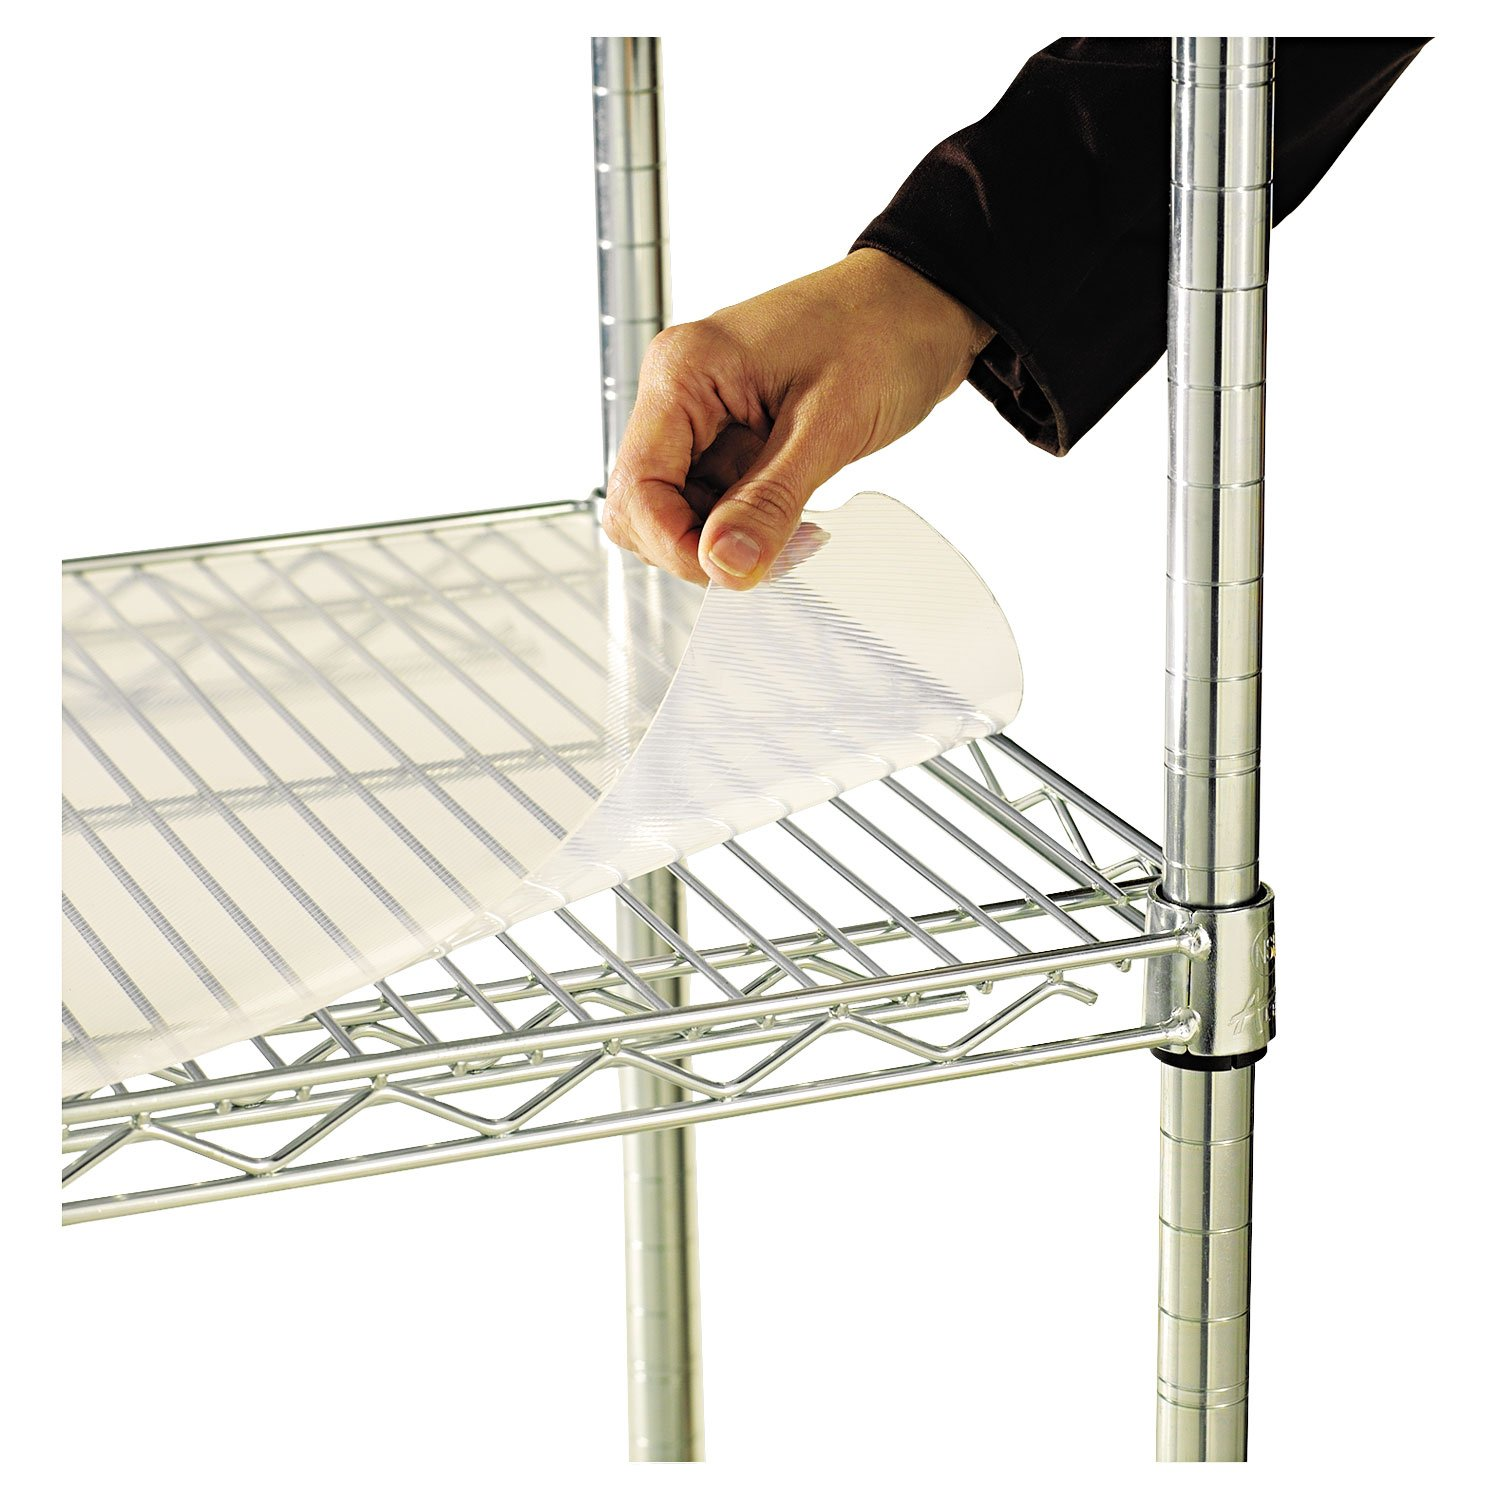 Amazon.com: Alera ALESW59SL4818 Shelf Liners For Wire Shelving ...